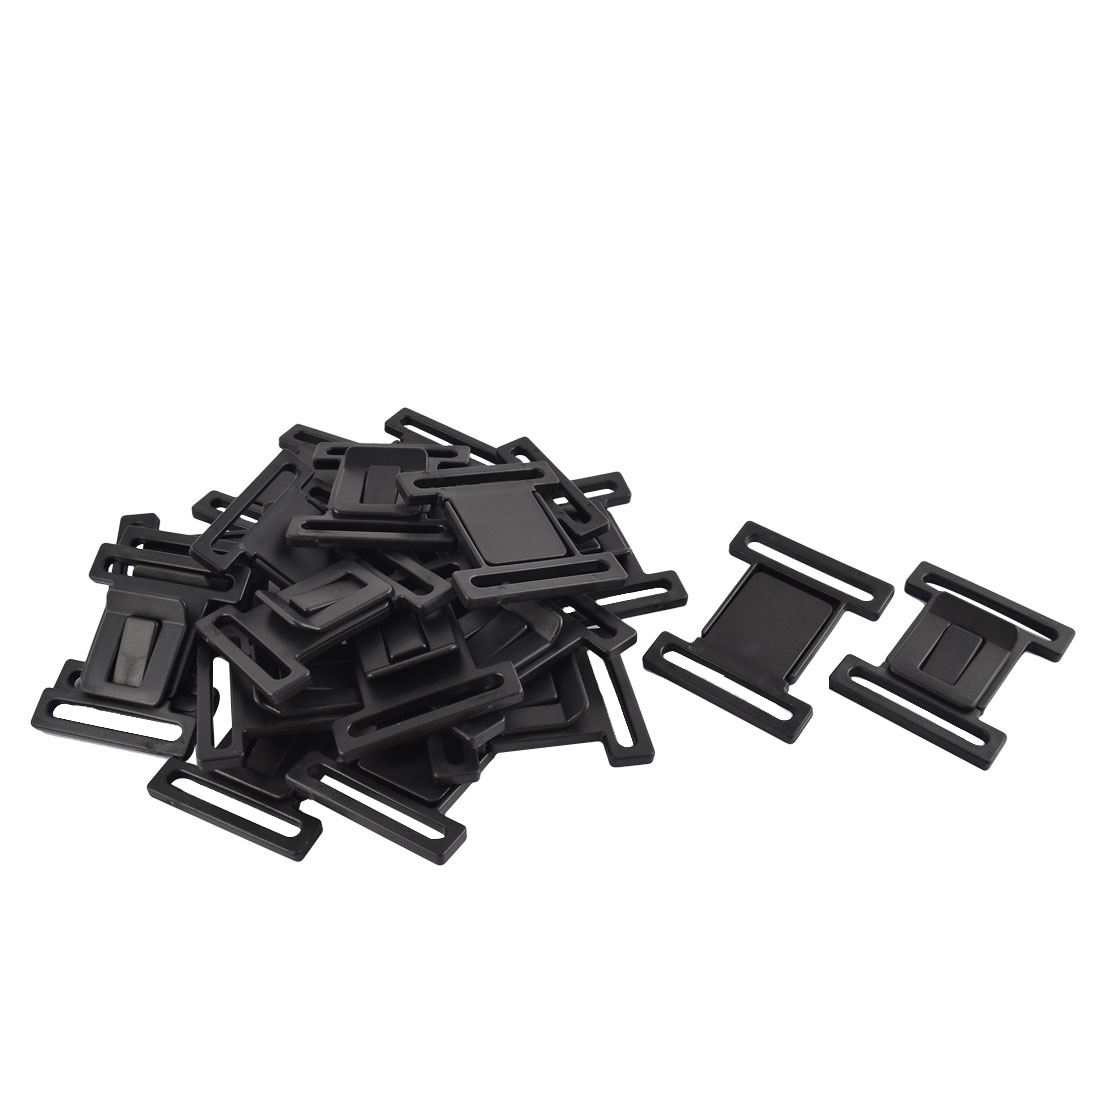 Backpack Case Box Strap Plastic Bag Belt Buckles Black 5.8cm Width 20pcs